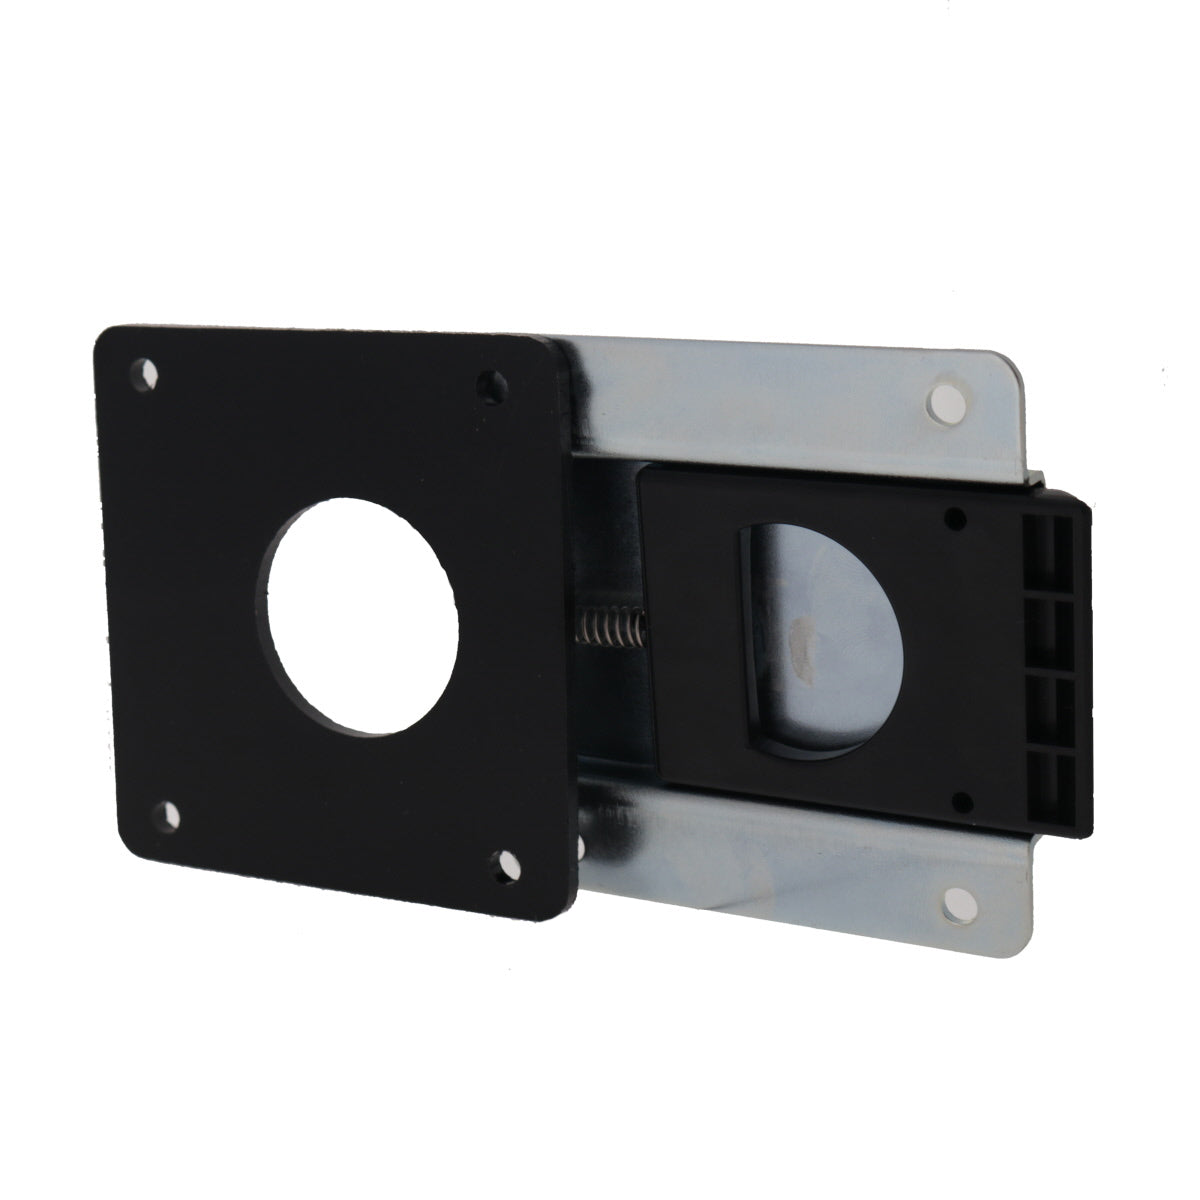 Rear Mount Slam Latch with Spacer, 3/4 view